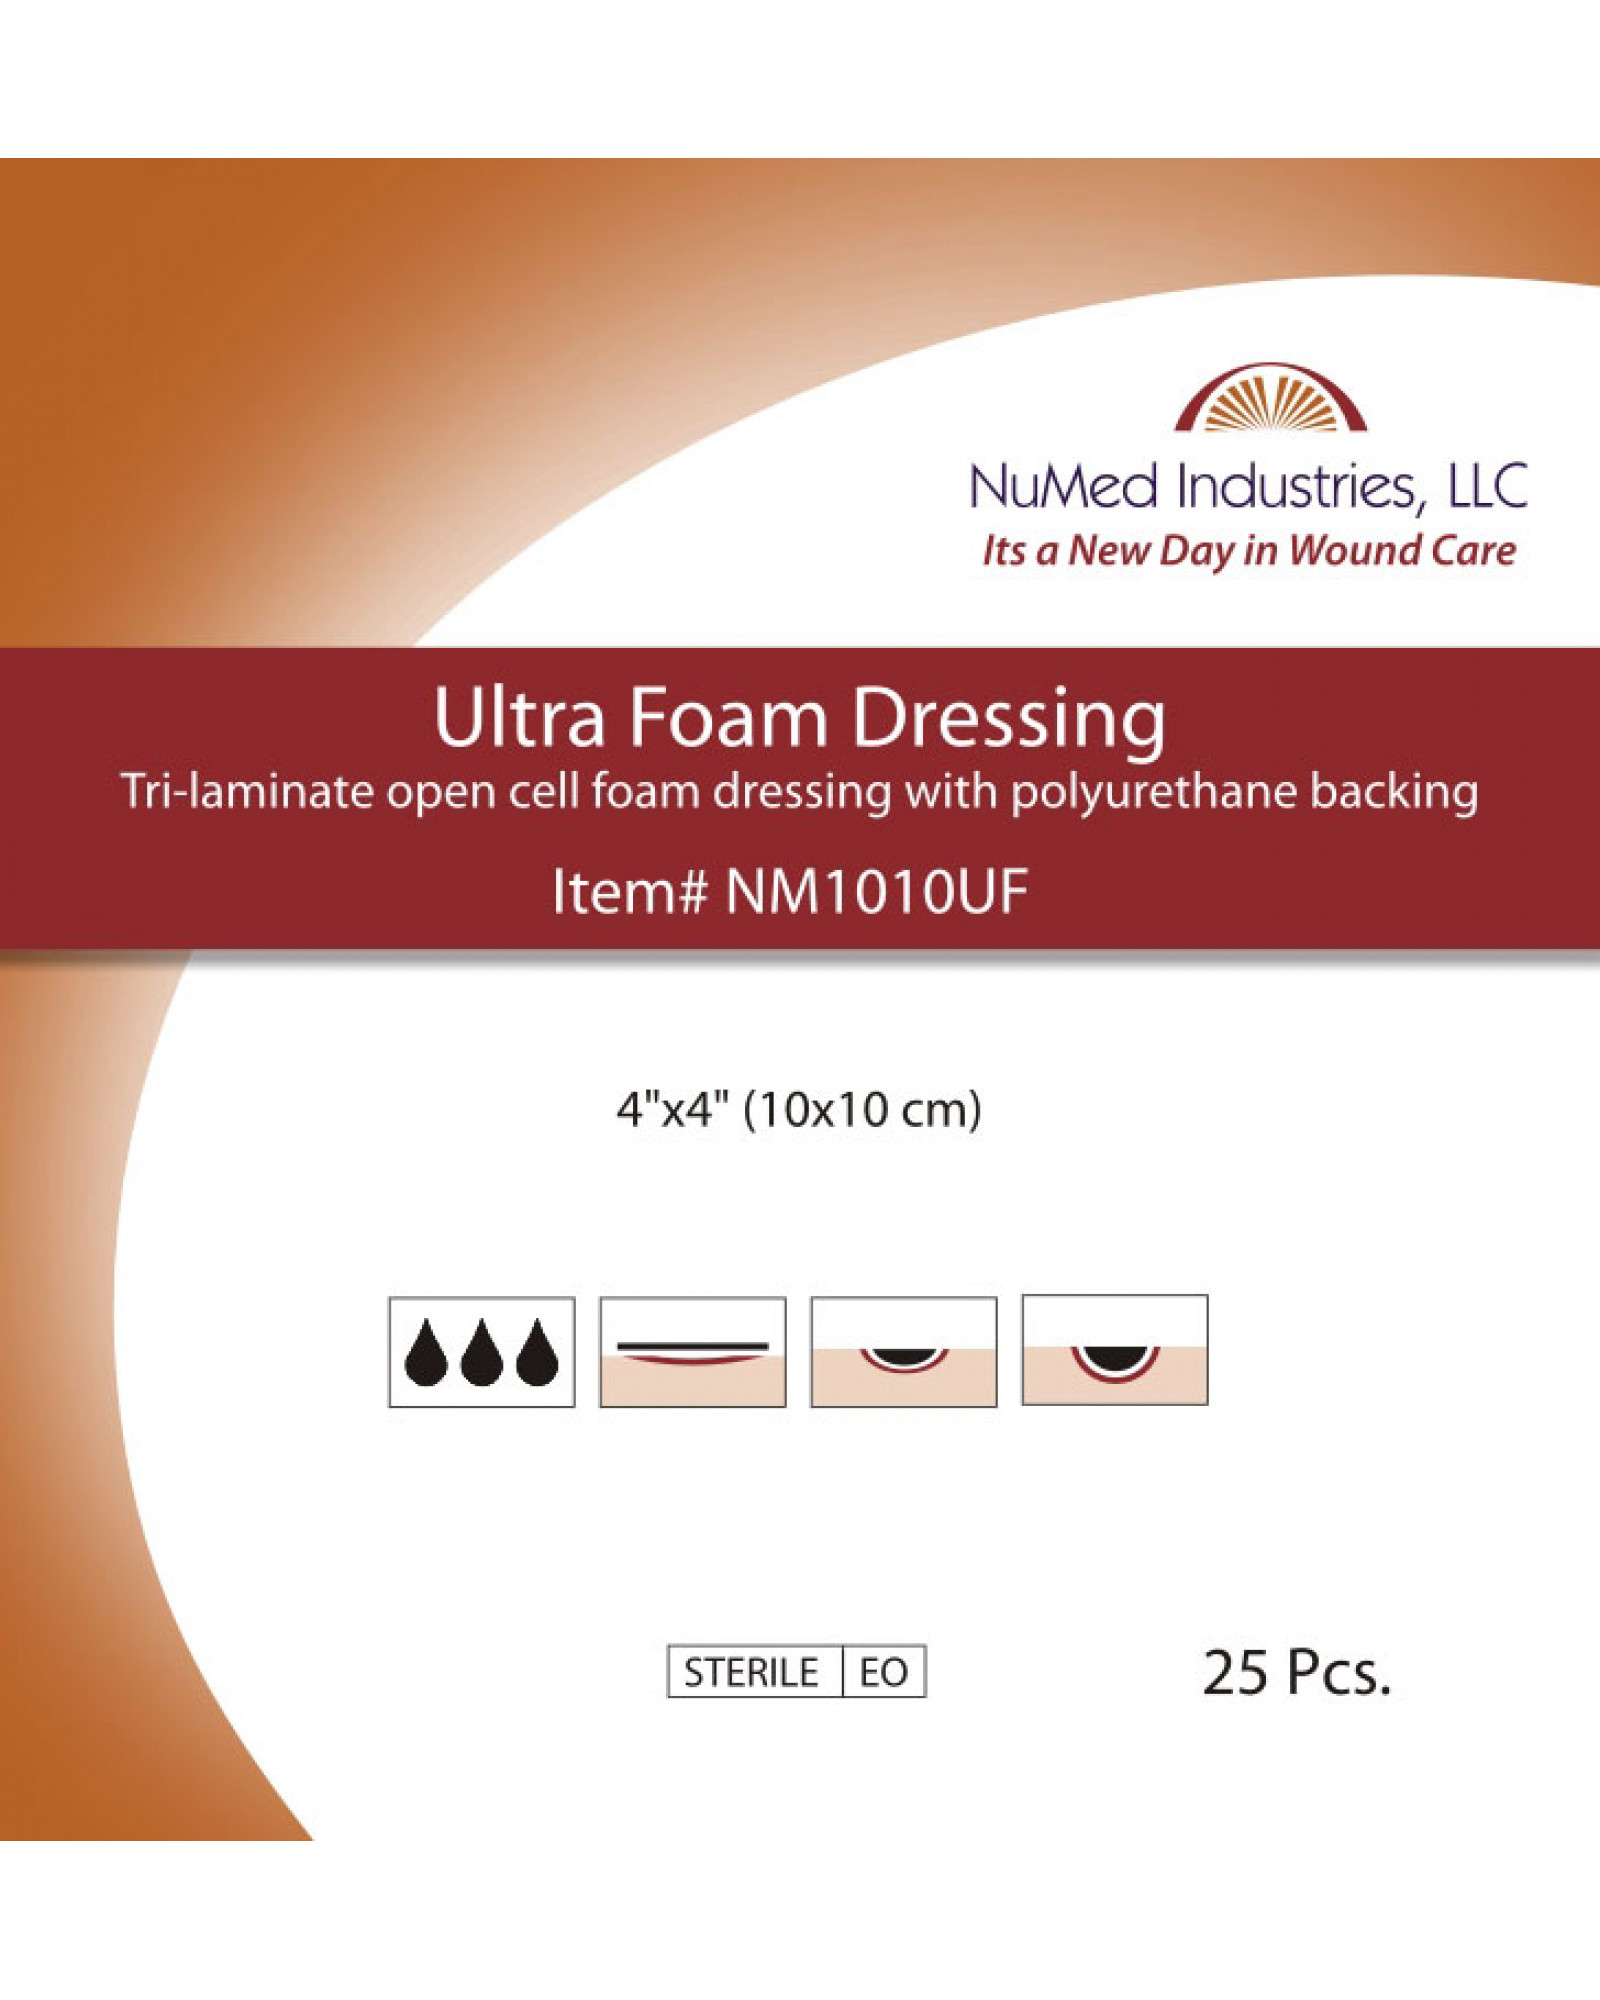 NuMed Ultra Foam Dressing